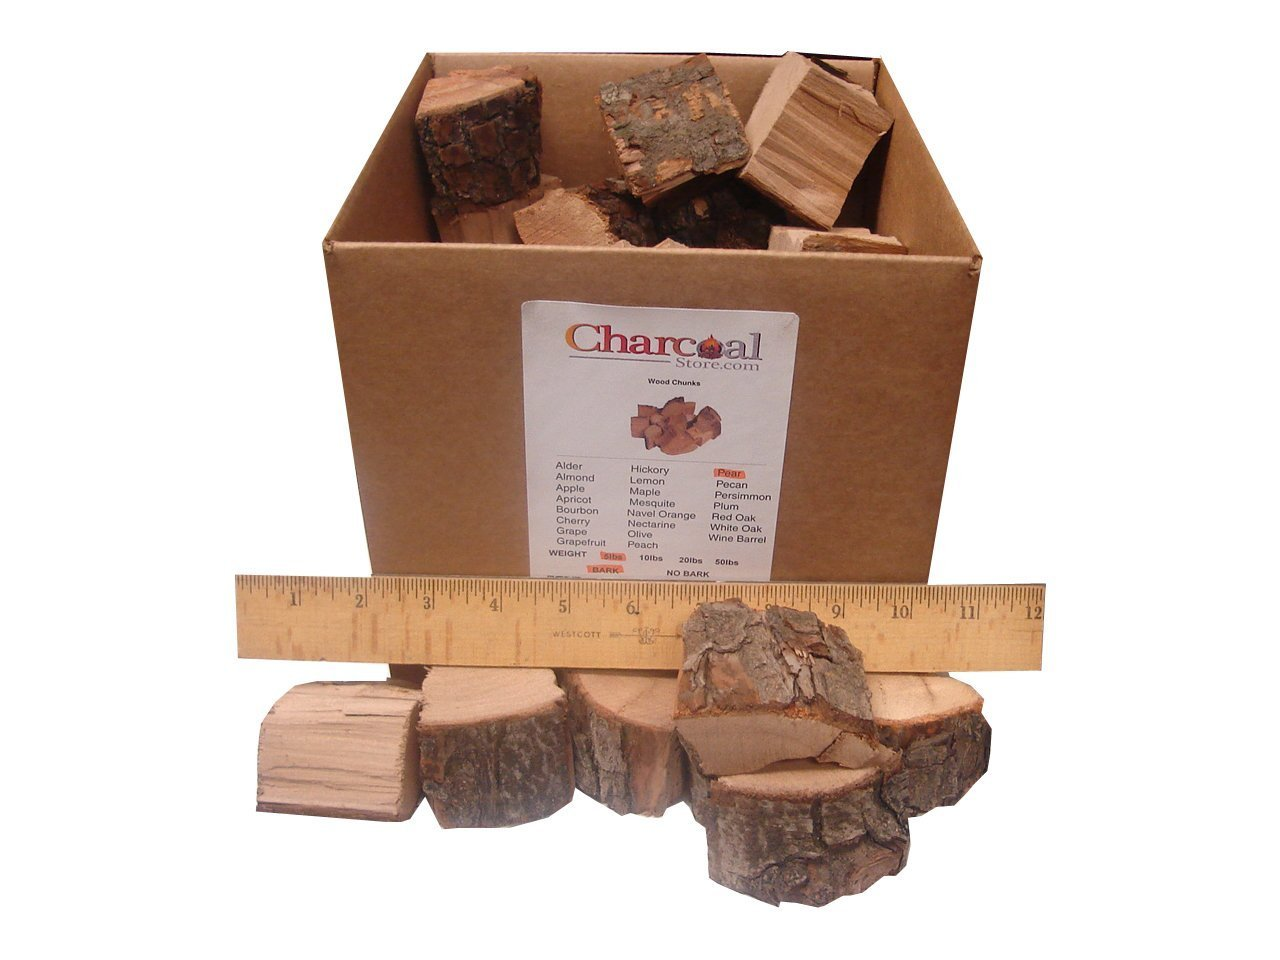 CharcoalStore Olive Wood Smoking Chunks - Bark (10 Pounds) by CharcoalStore